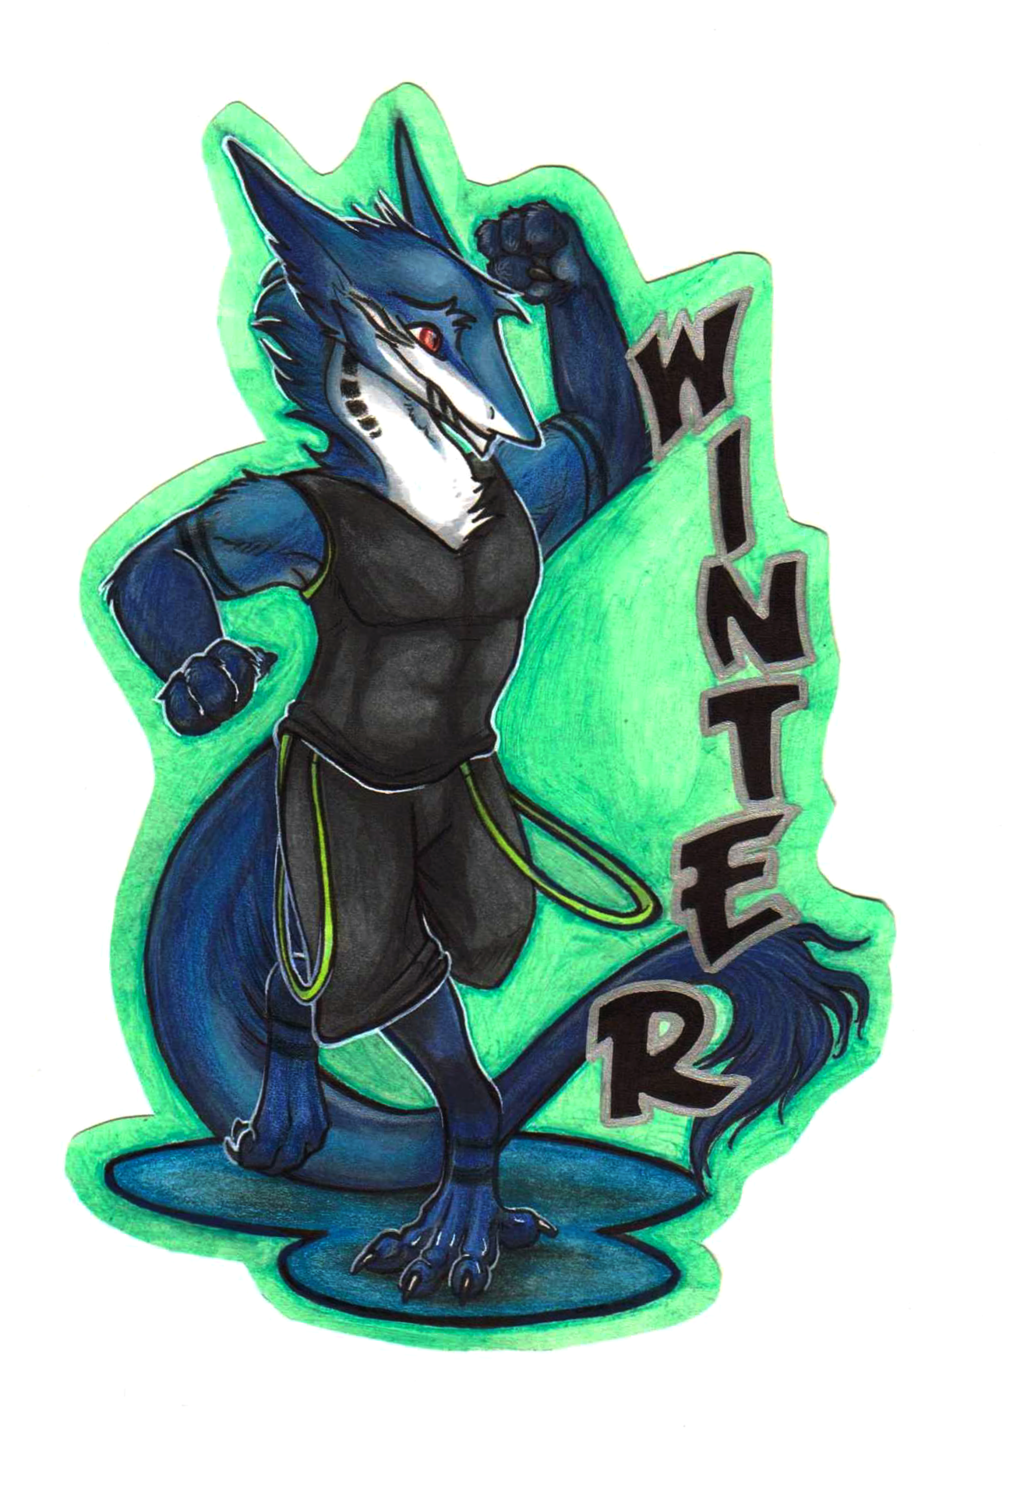 Most recent image: Winter [Badge Comm]